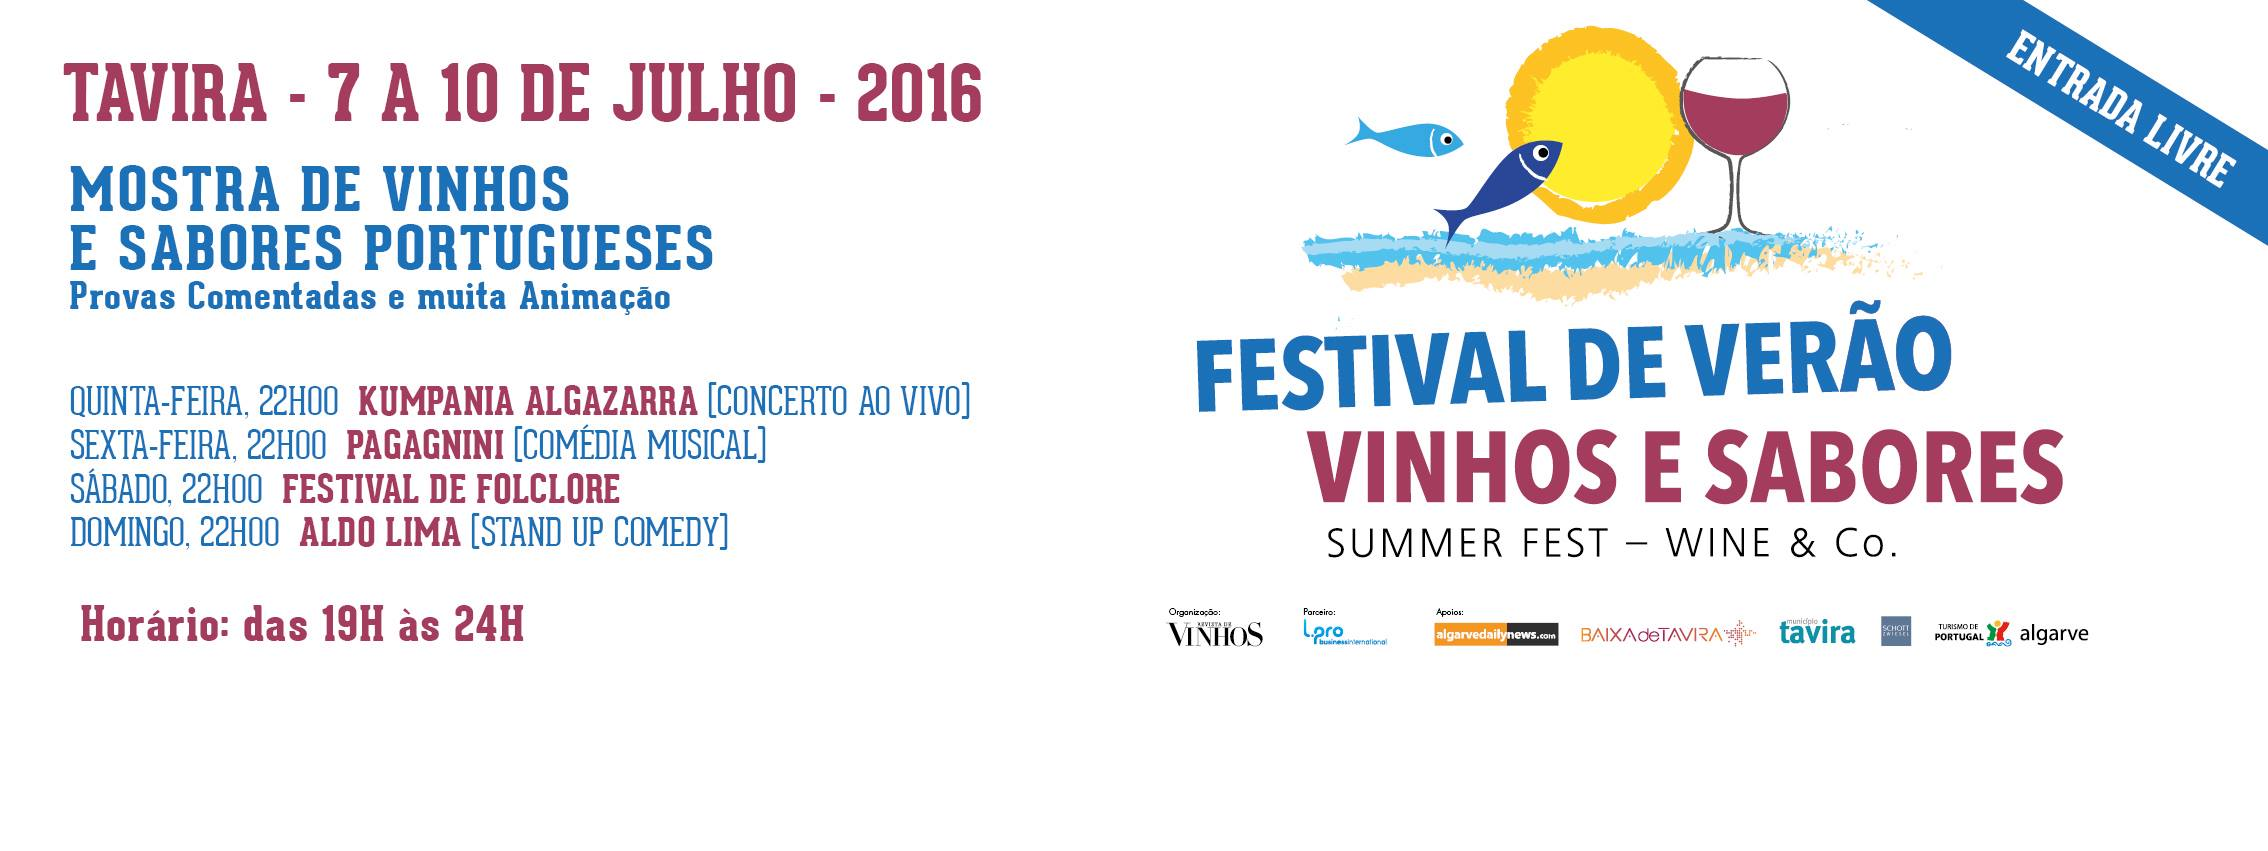 We will be in Tavira at the Summer Fest – Wine & Co., from 7th – 10th July. Come, taste our wines and find the magic of Alvarinho.